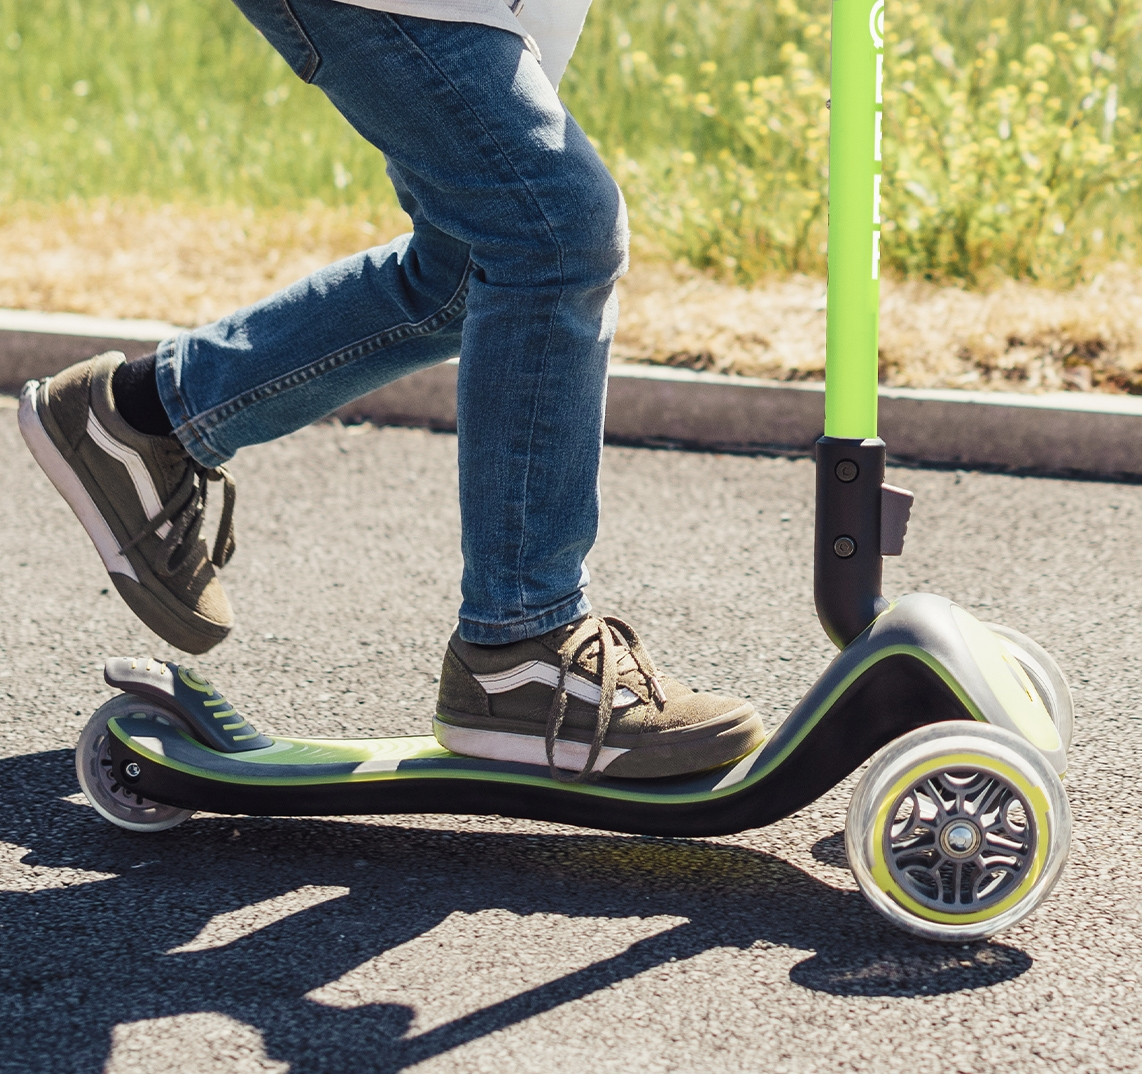 Green light-up scooter for kids with an extra-wide scooter deck